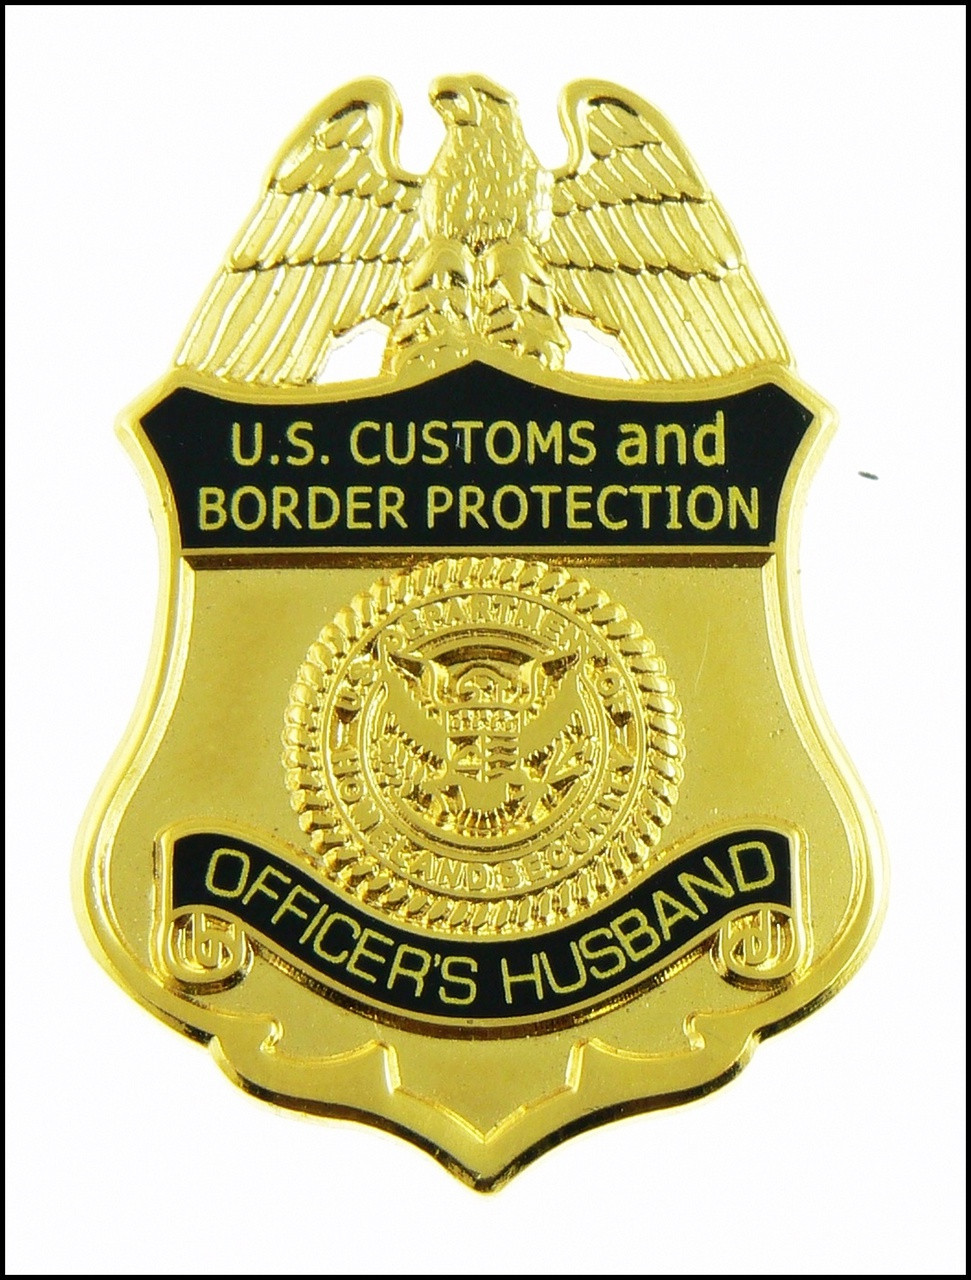 Customs and Border Protection Officers Husband Mini Badge Magnet